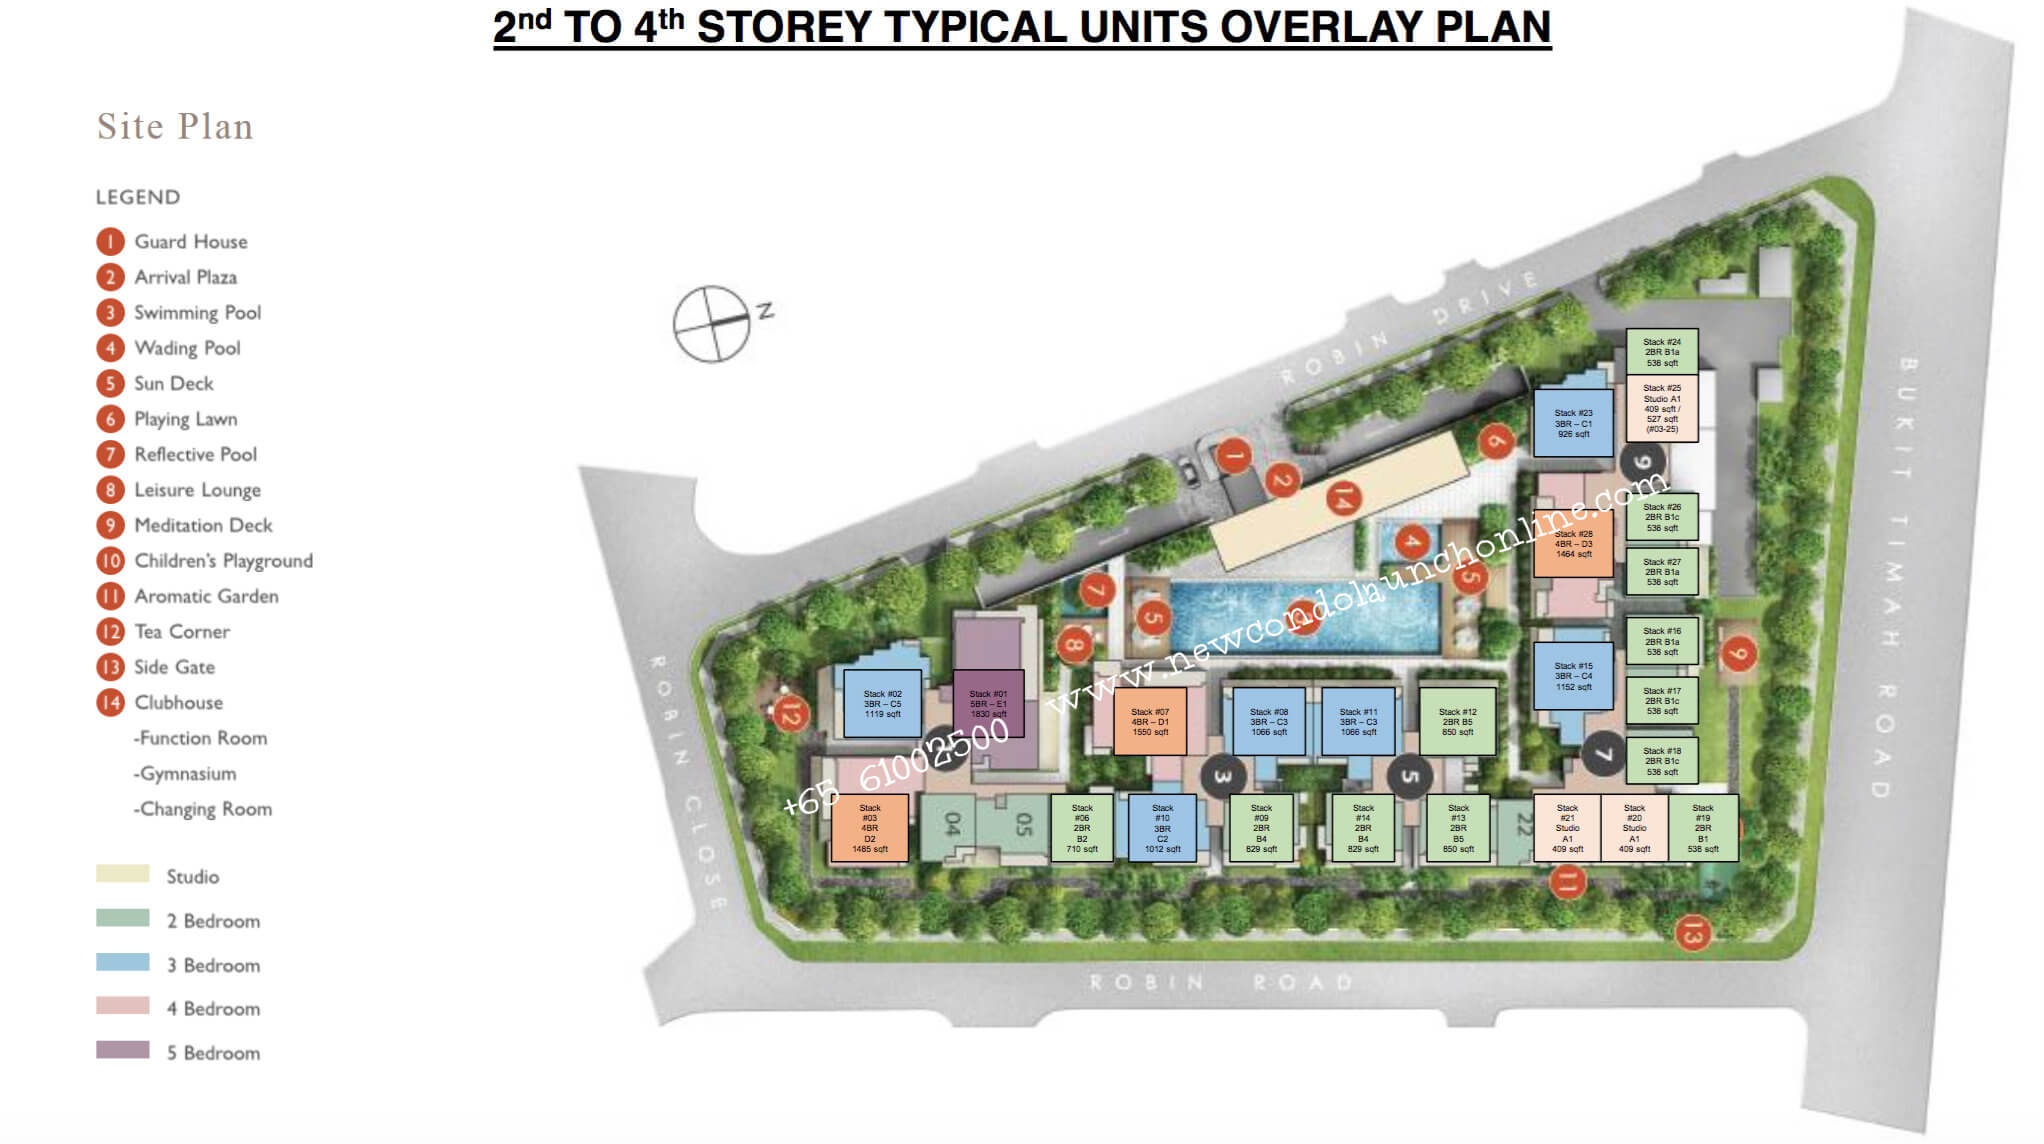 Condo Singapore - Robin Residences - Site Plan 2nd To 4th Level